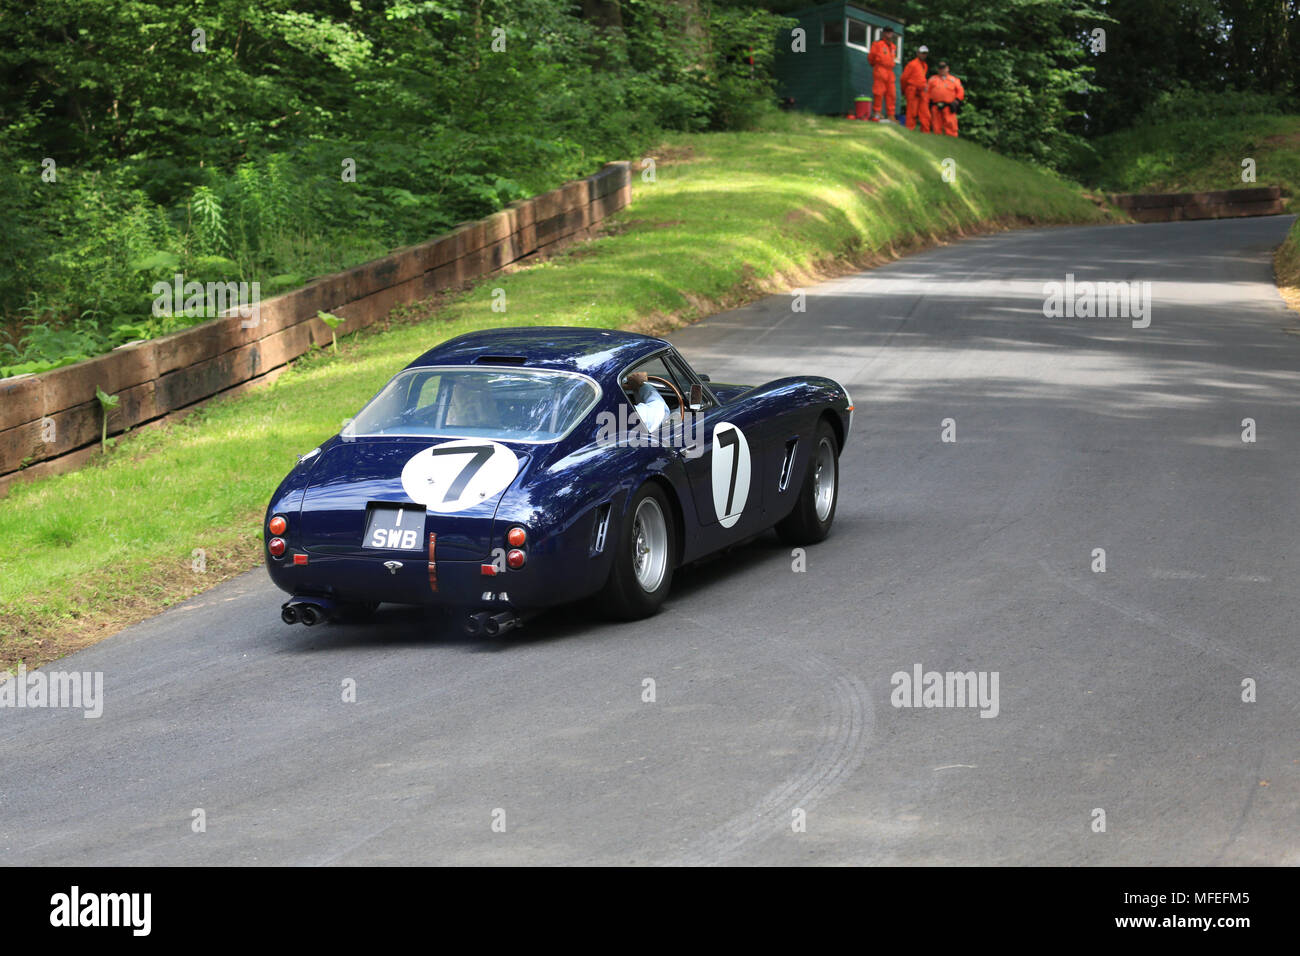 Sir Stirling Moss OBE driving a Ferrari 250 GT SWB up the hill at Shelsley Walsh hill climb, Worcestershire, uk. - Stock Image